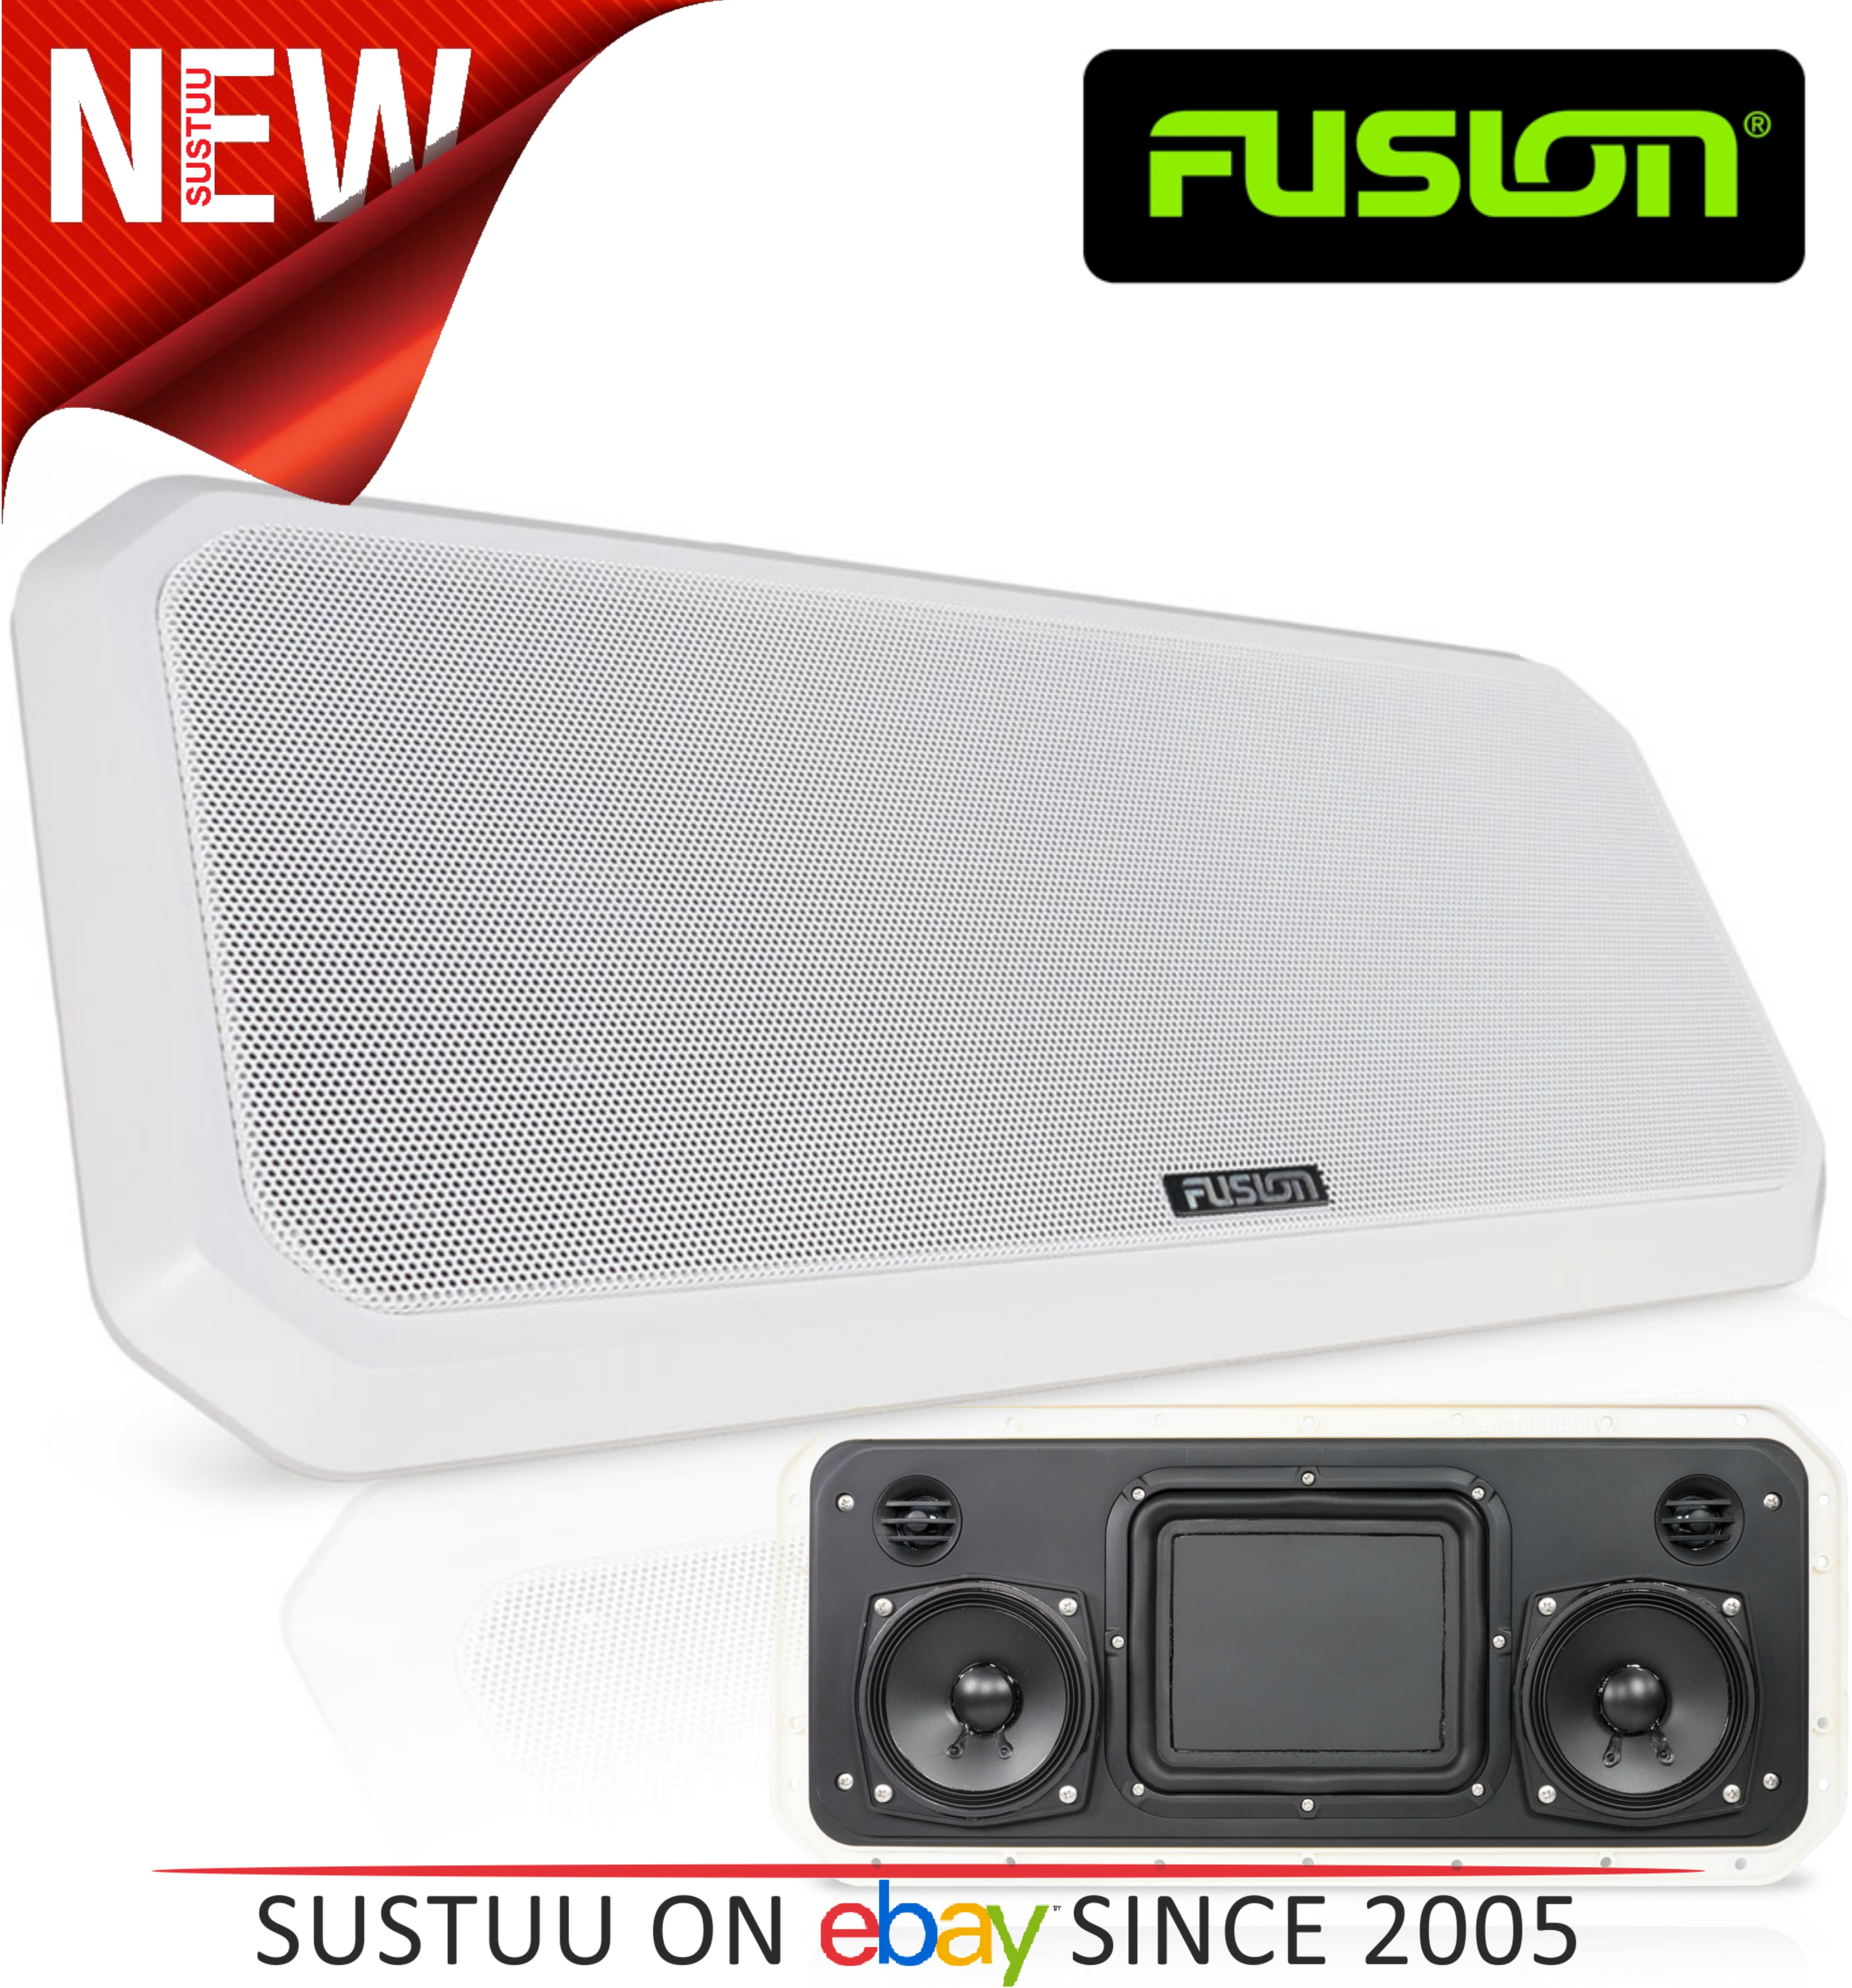 Fusion RV-FS402W IP65 Weatherproof Speaker System for Marine Boat Yacht - WHITE